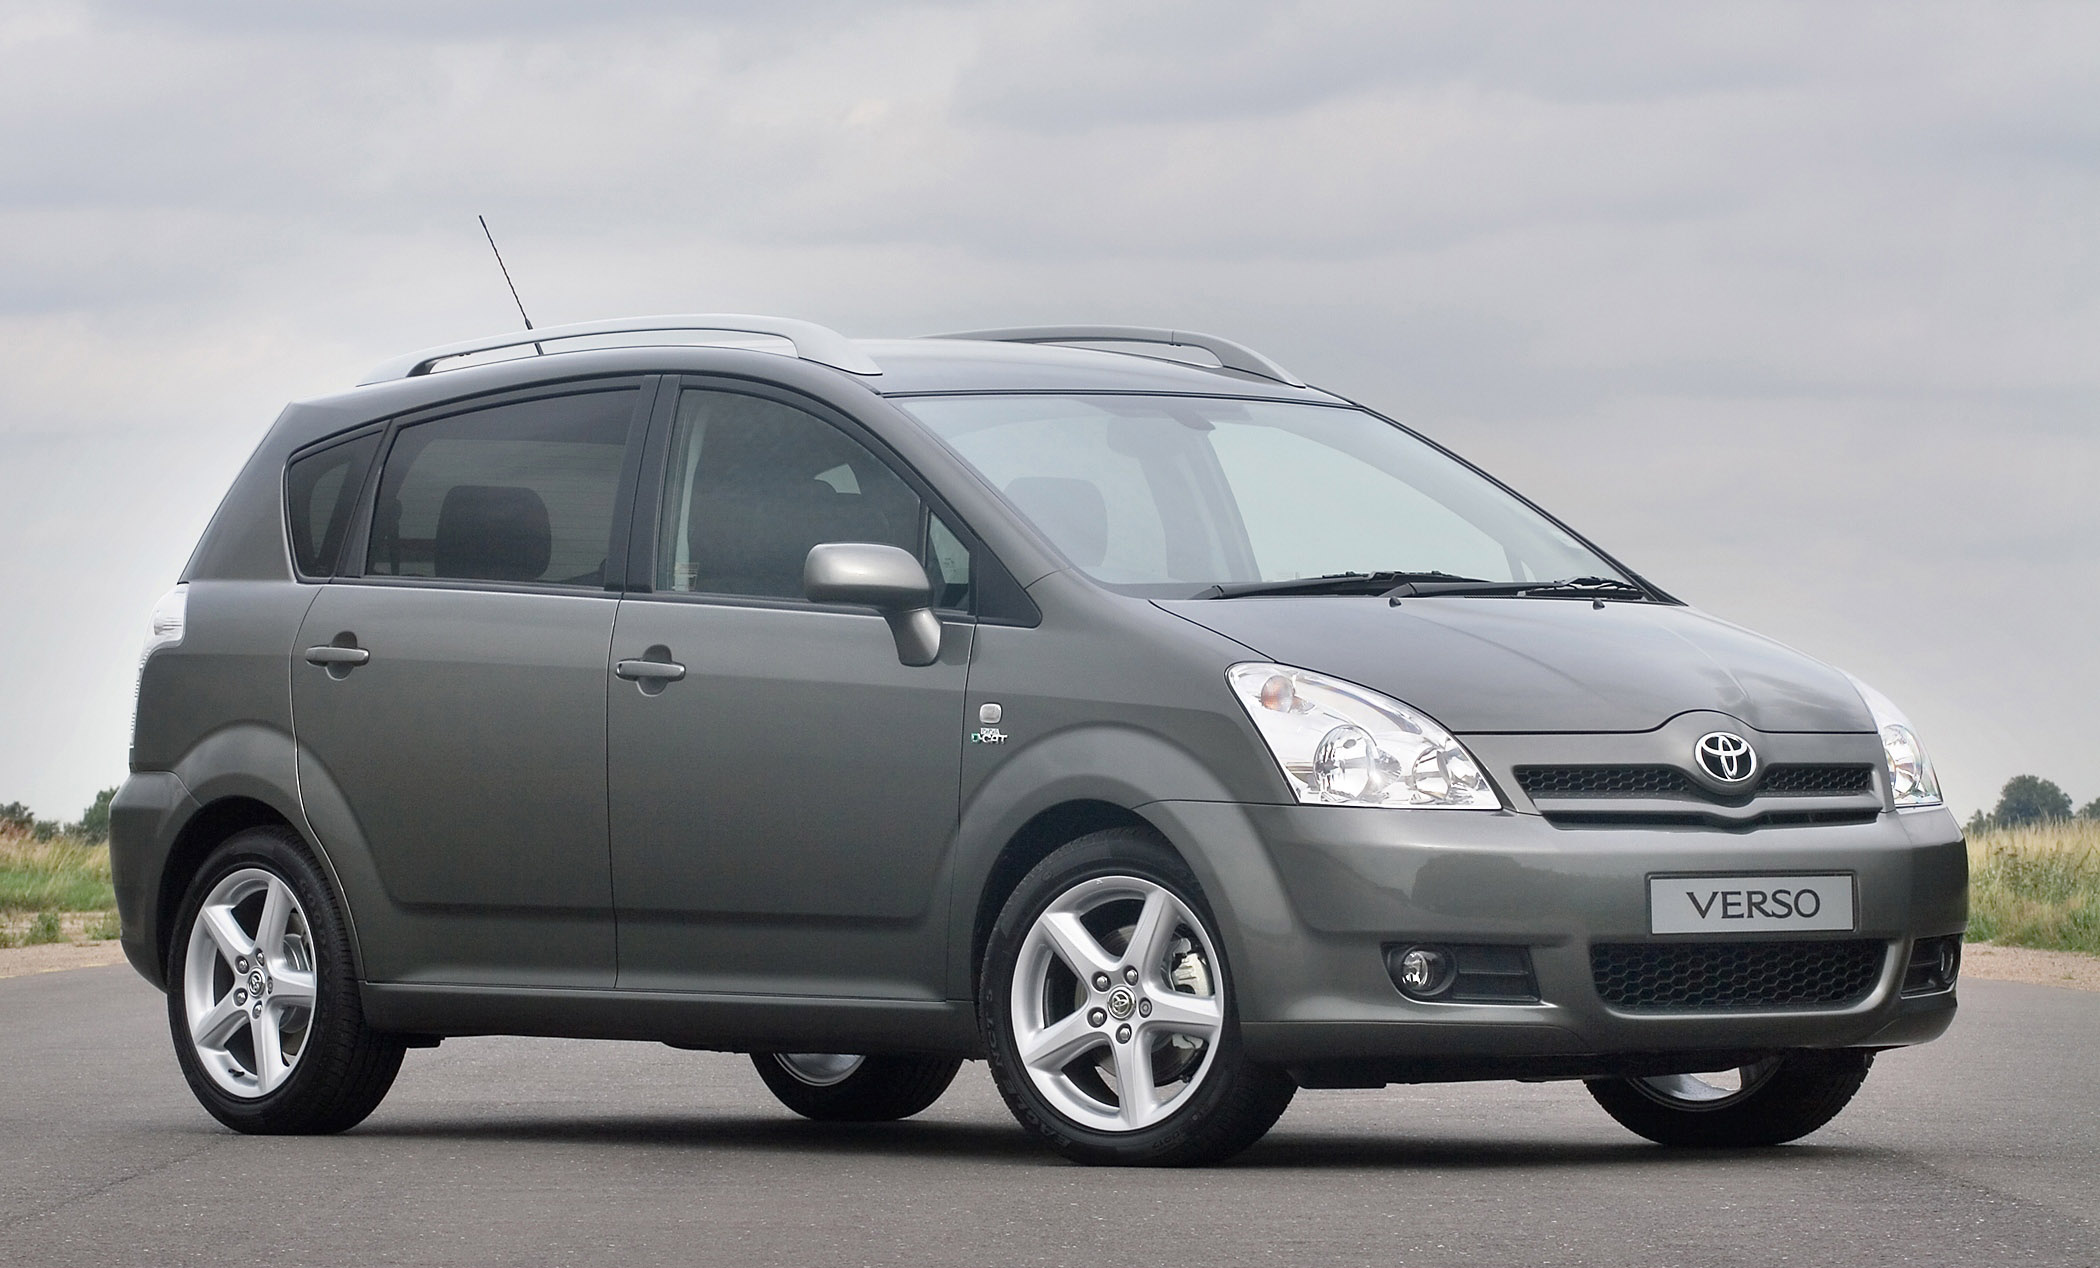 Cars Wallpaper For Google 2005 Toyota Verso D 4d Picture 77818